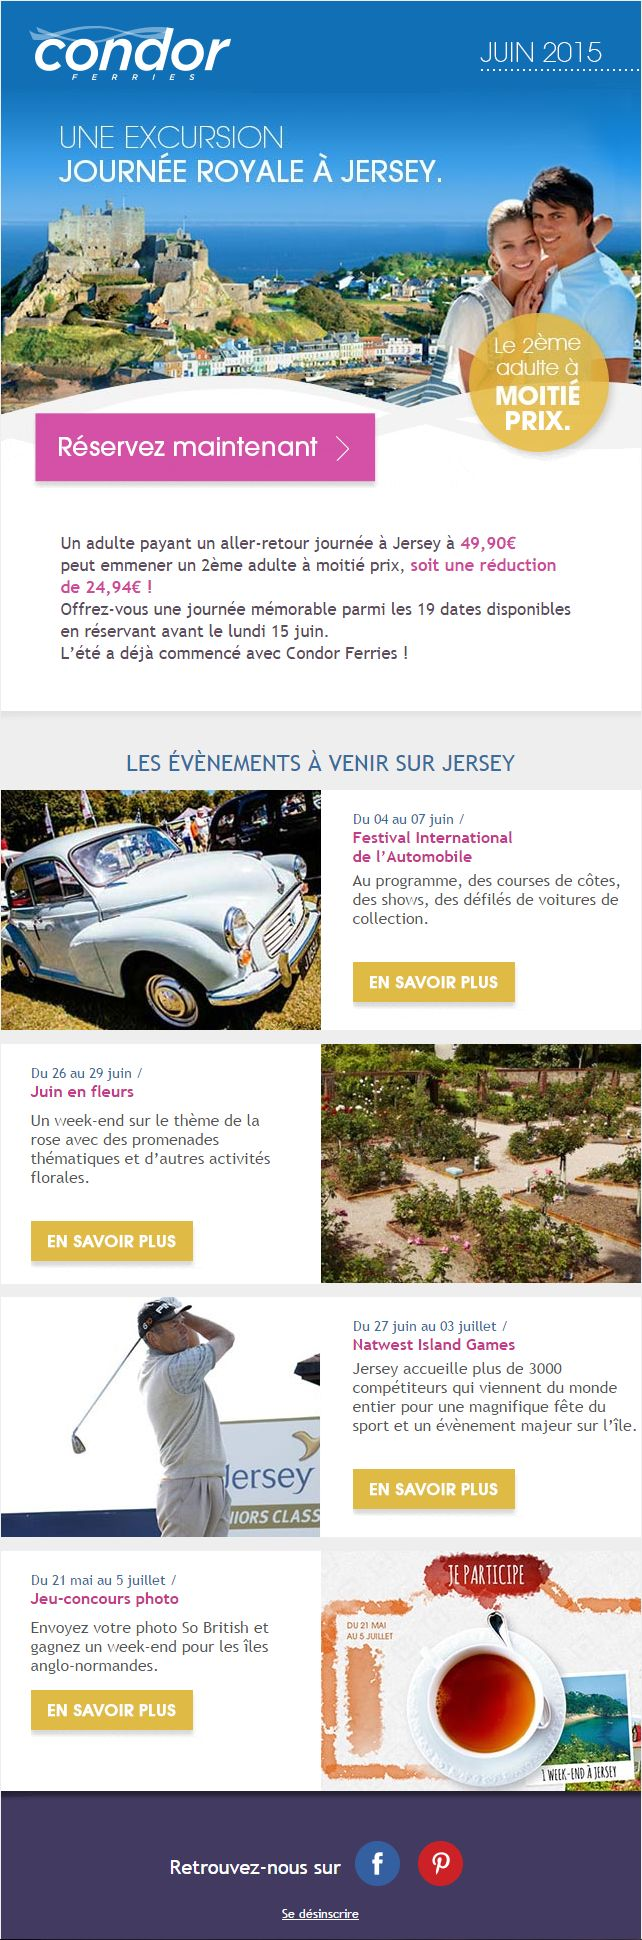 Emailing - Condor Ferries Juin 2015 - Journée Royale : http://www.condorferries.fr/